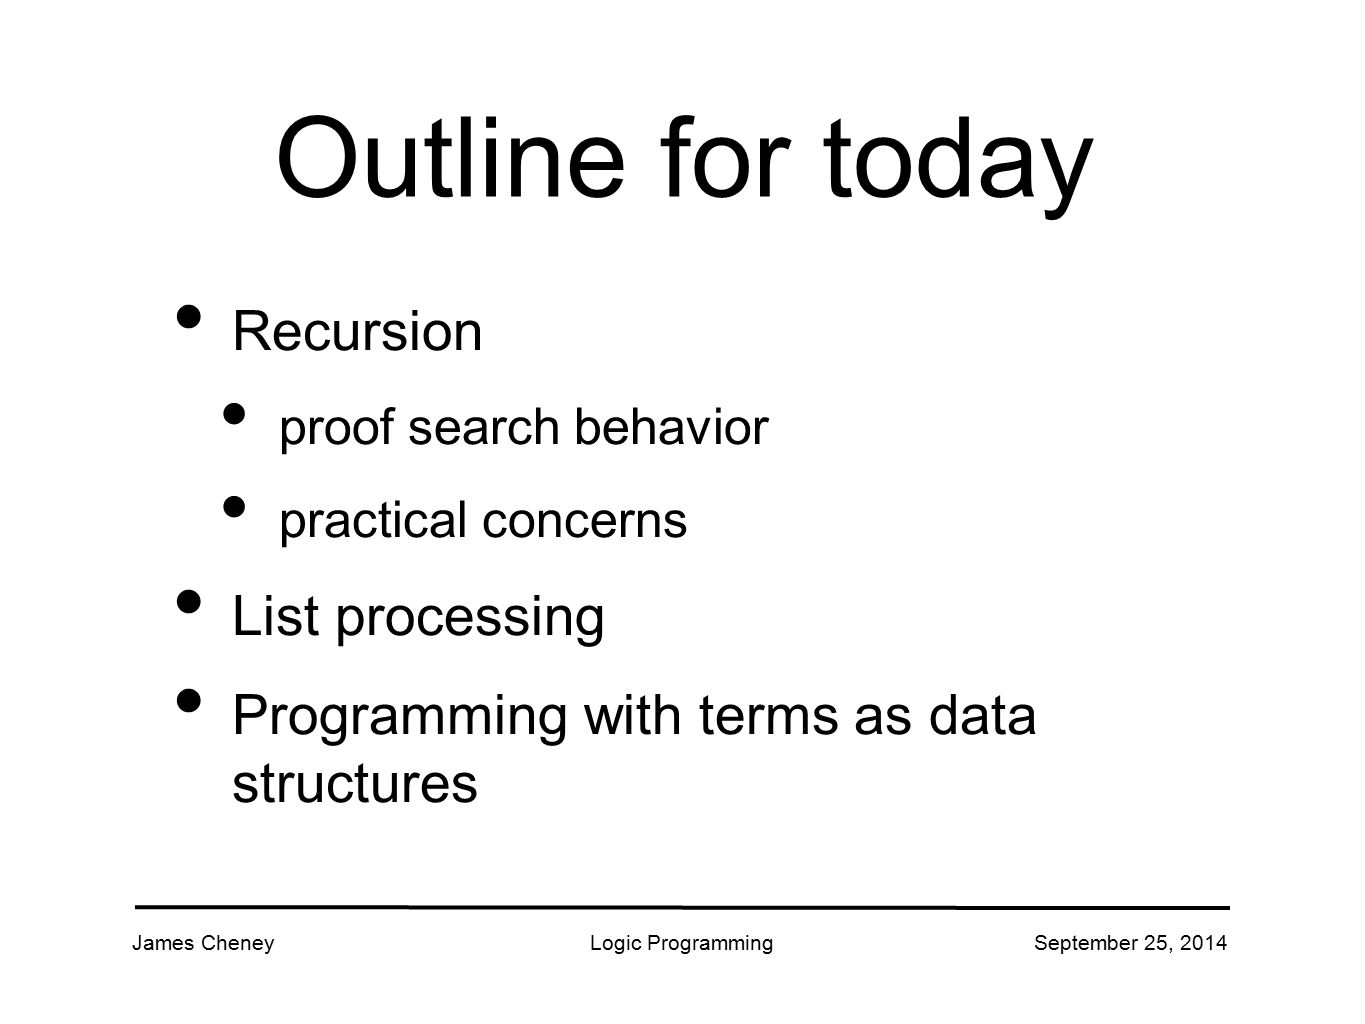 James CheneyLogic ProgrammingSeptember 25, 2014 Outline for today Recursion proof search behavior practical concerns List processing Programming with